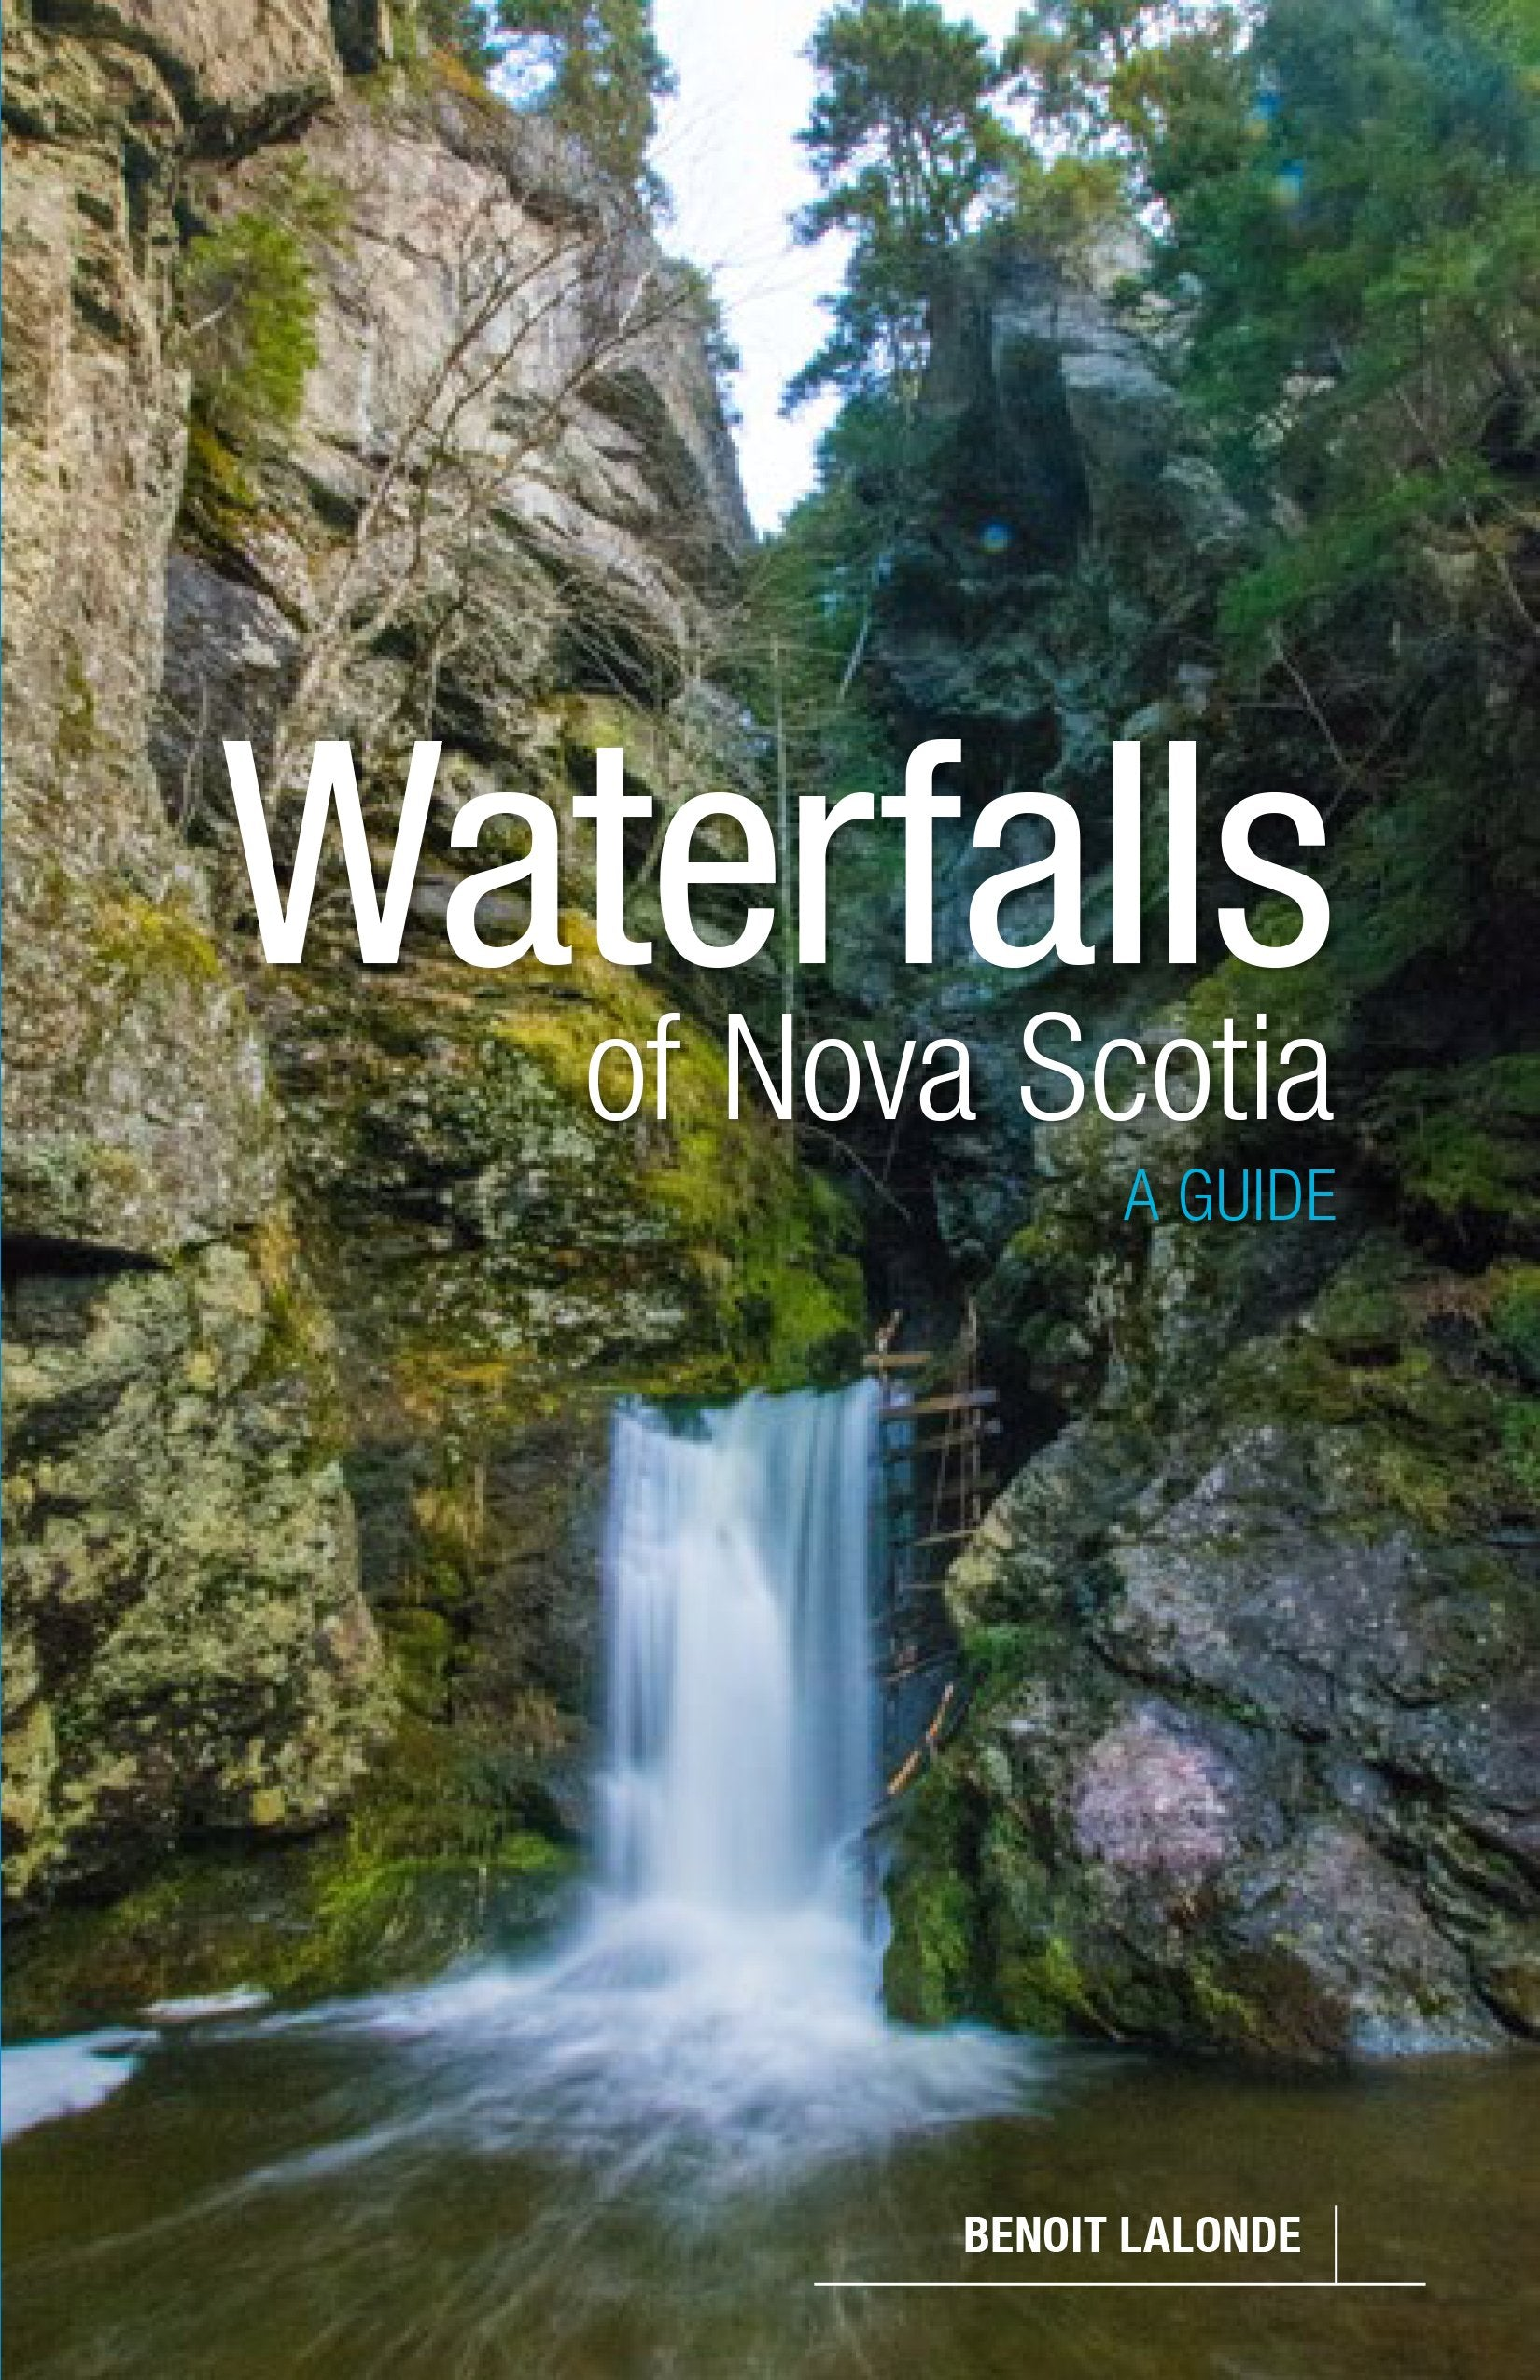 Waterfalls of Nova Scotia: A Guide